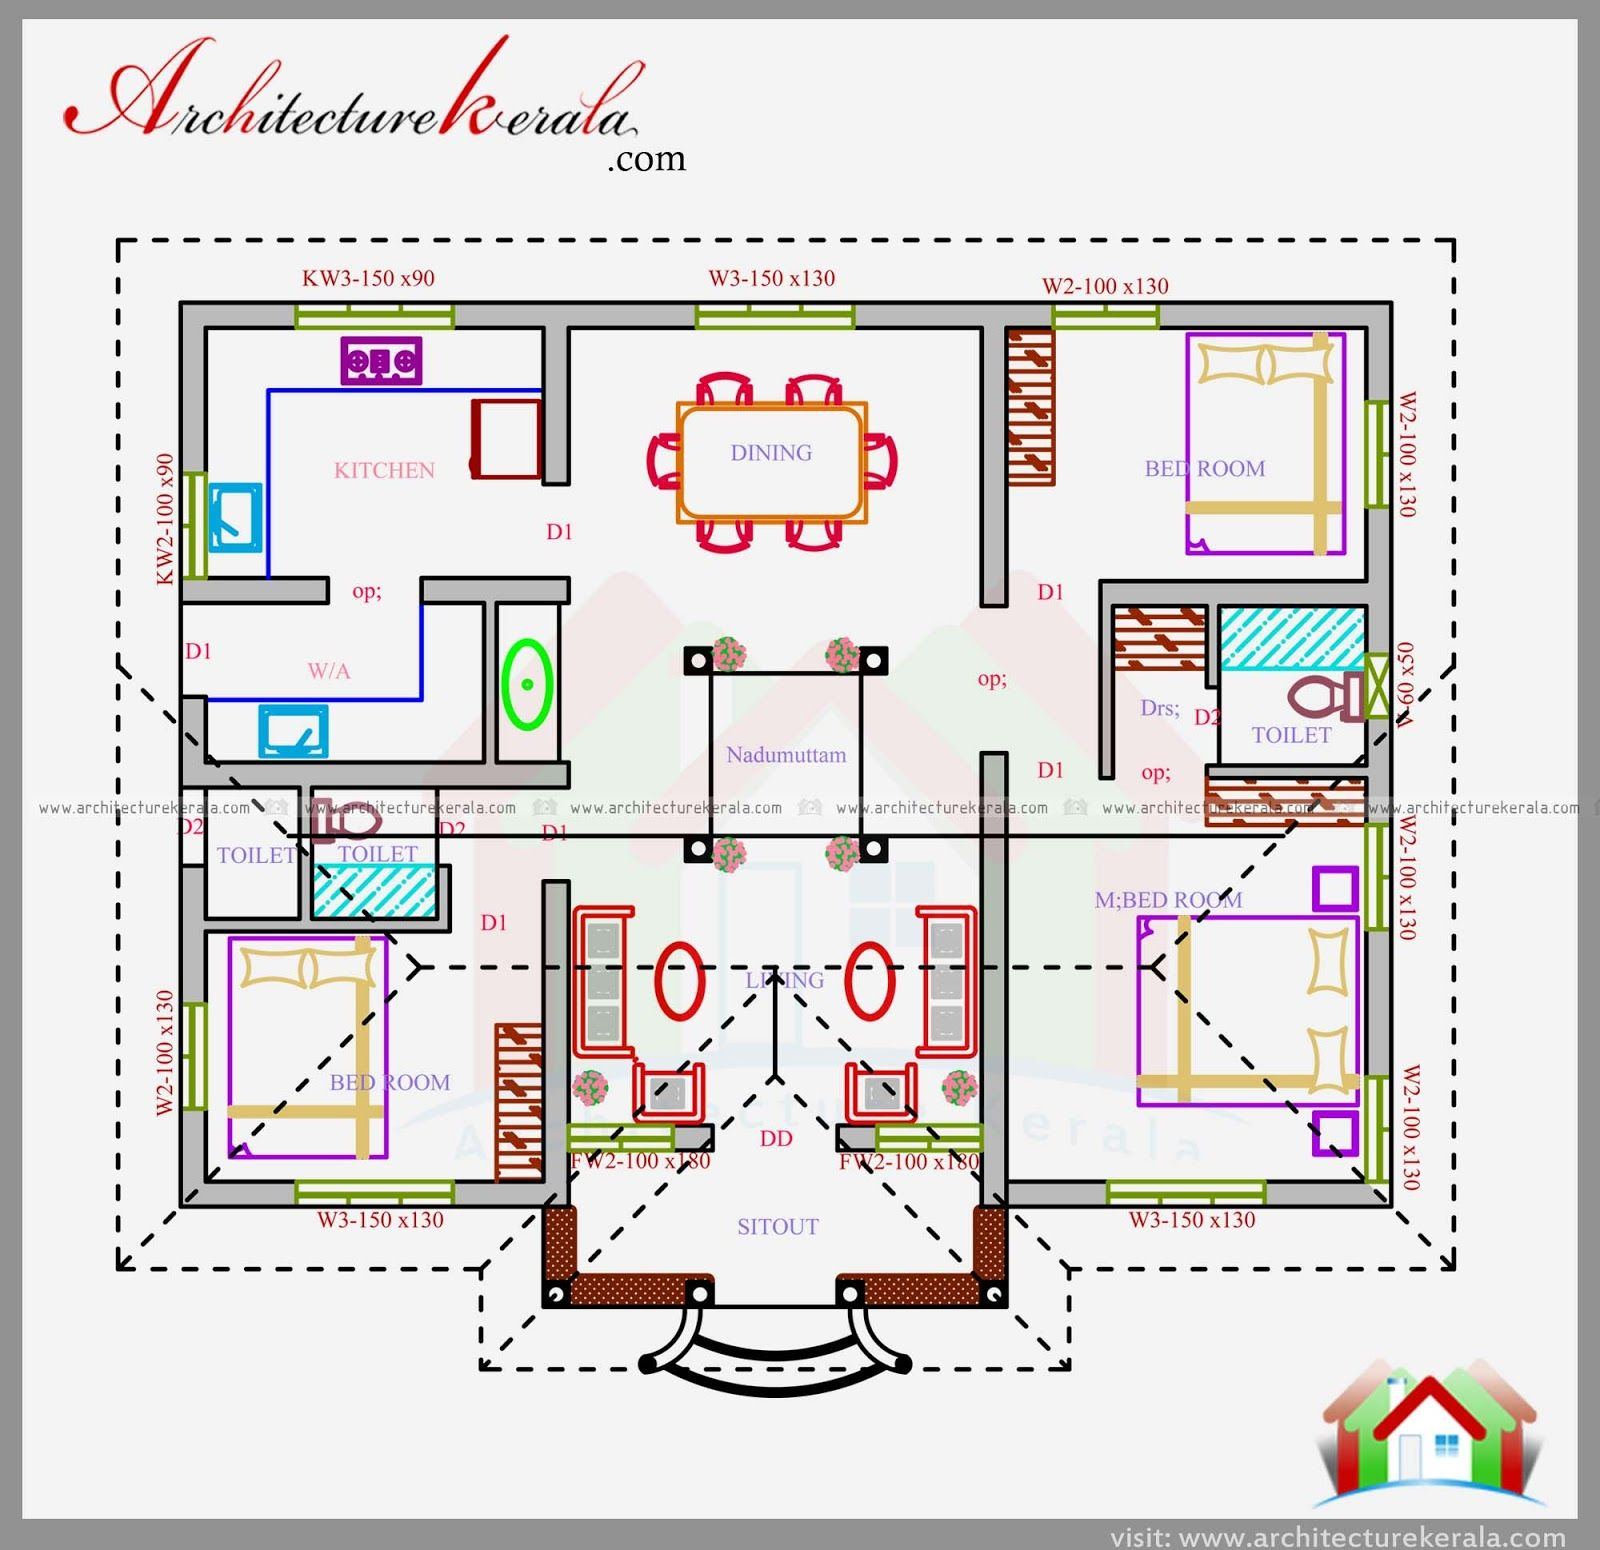 Three Bedrooms In 1200 Square Feet Kerala House Plan